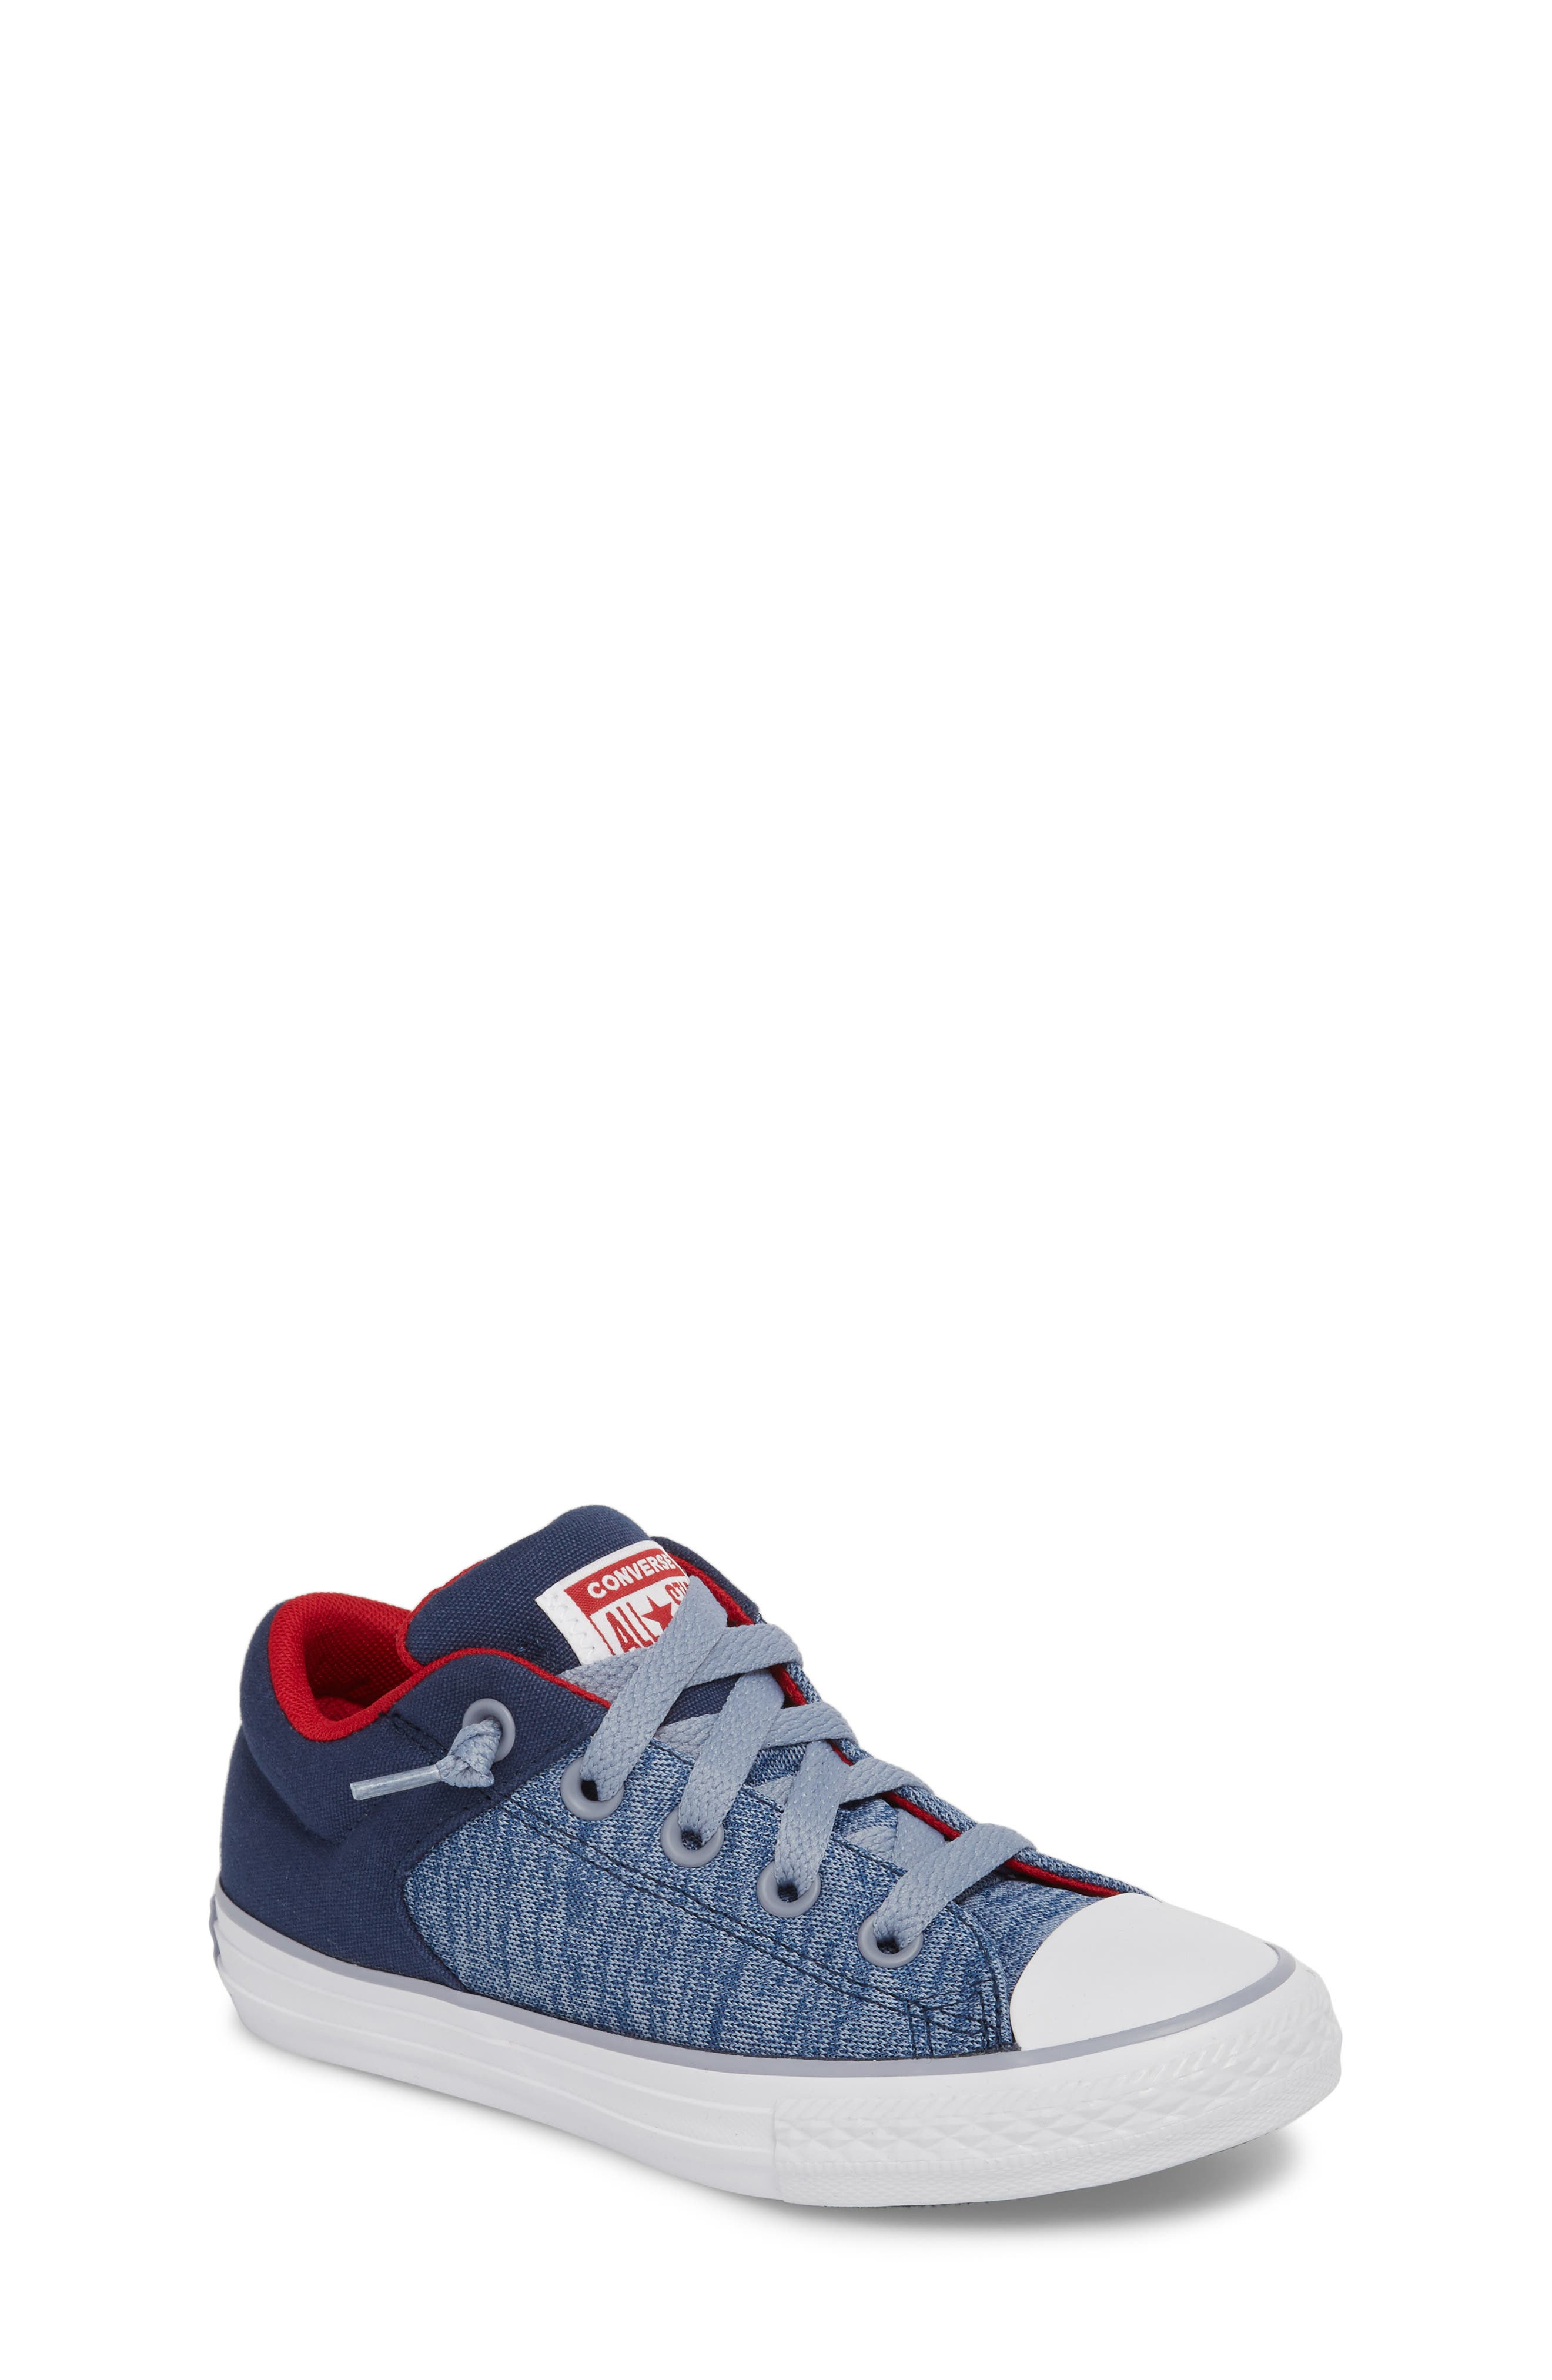 One Star Heather Street Sneaker,                             Main thumbnail 1, color,                             426